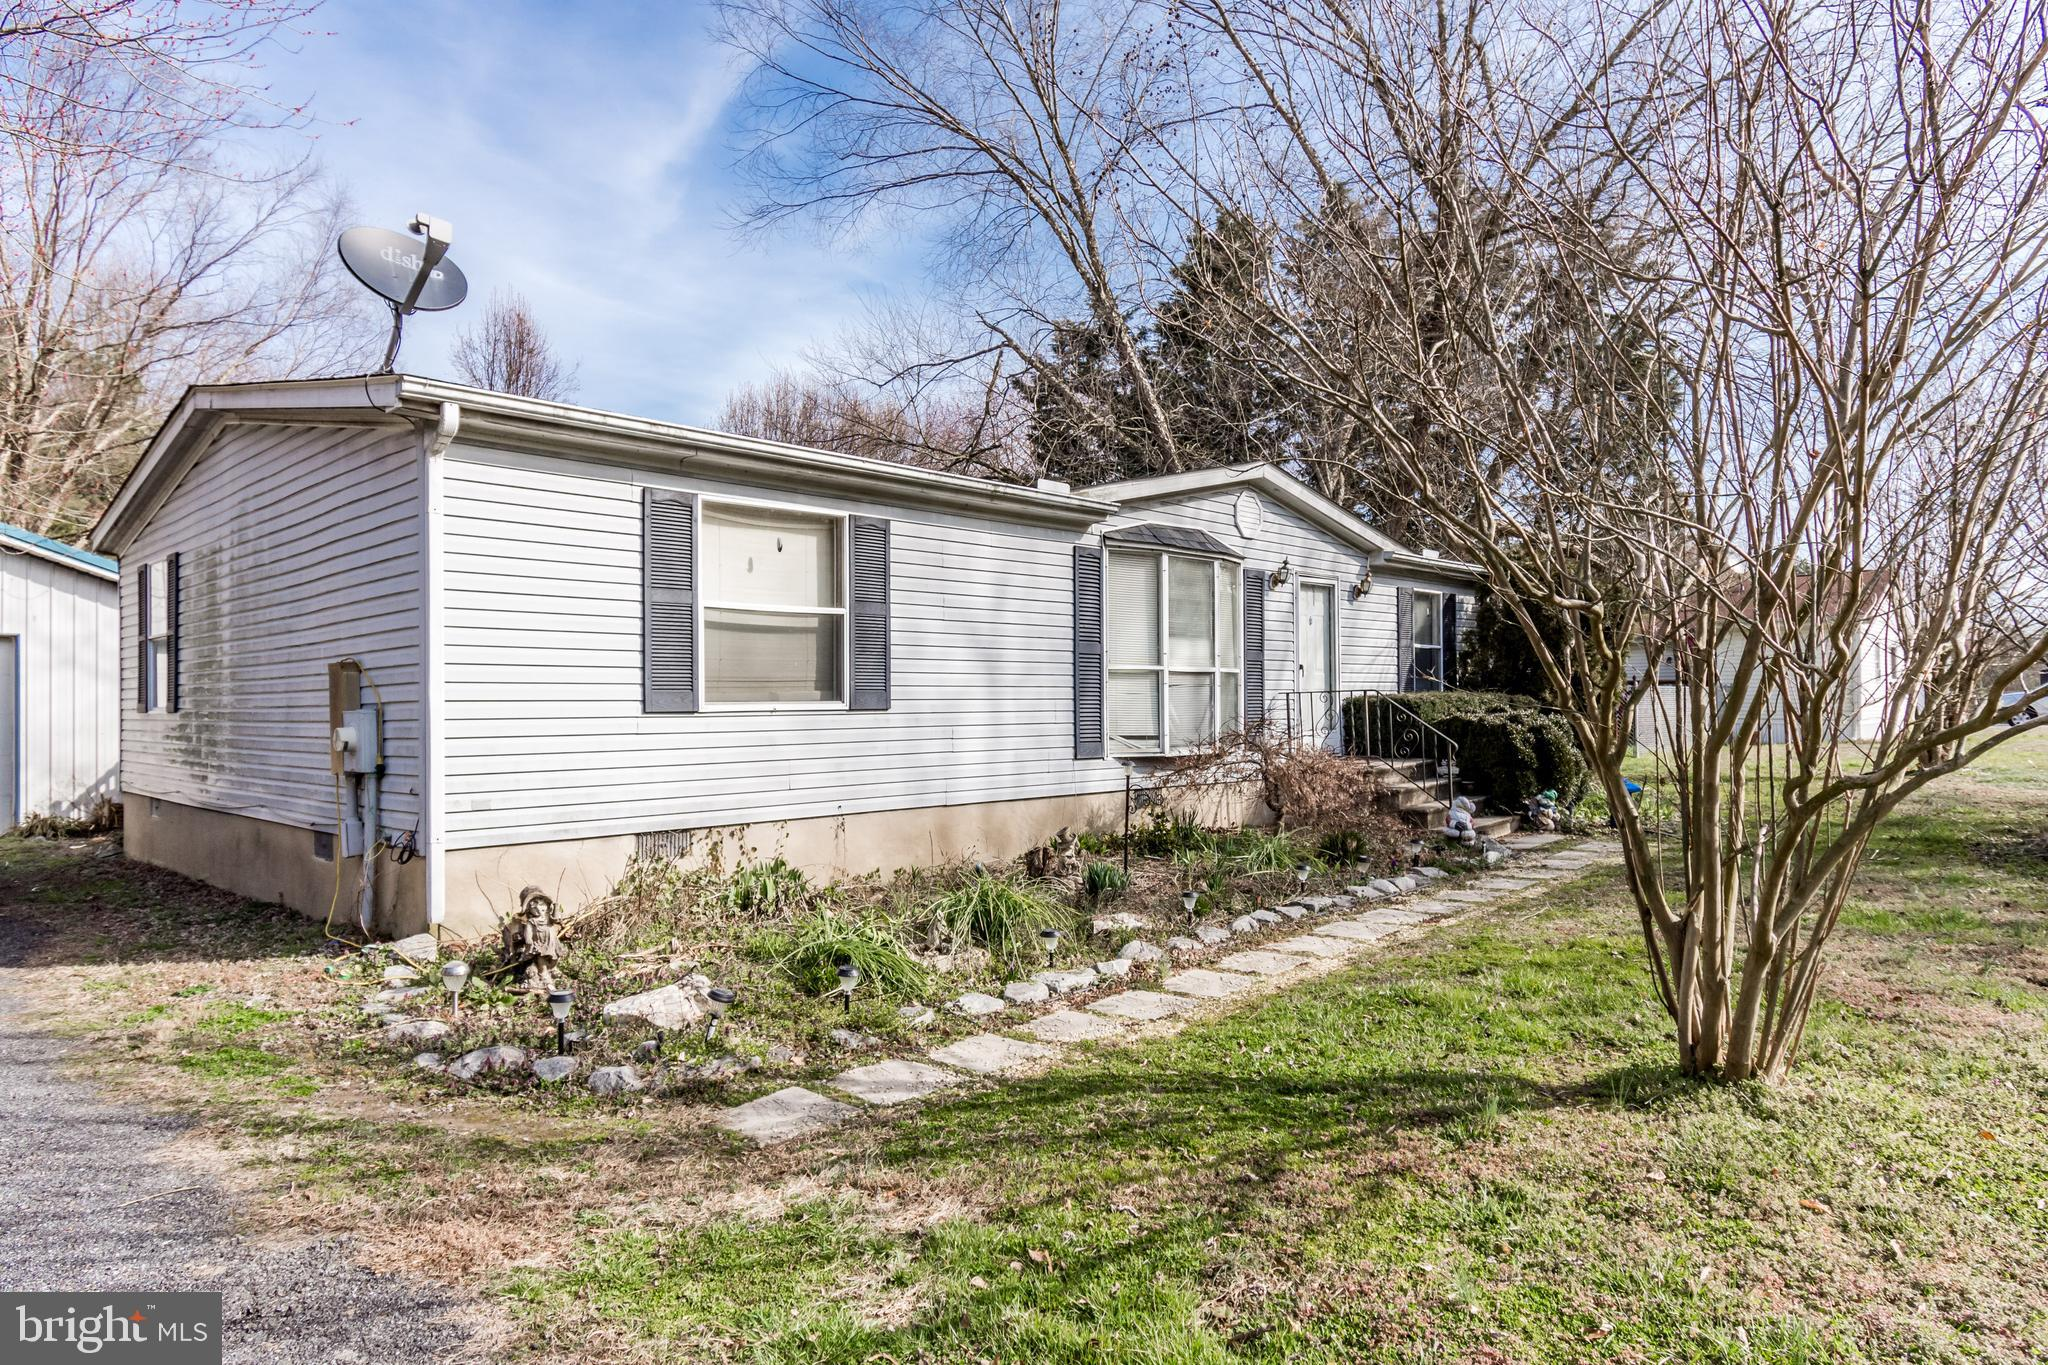 Come and see this bright and spacious 3 bed, 2 bath Class C on .70 acres! This property offers a great yard, shed, large garage, privacy, and country life, at a great price!  Make your appointment to see it today!